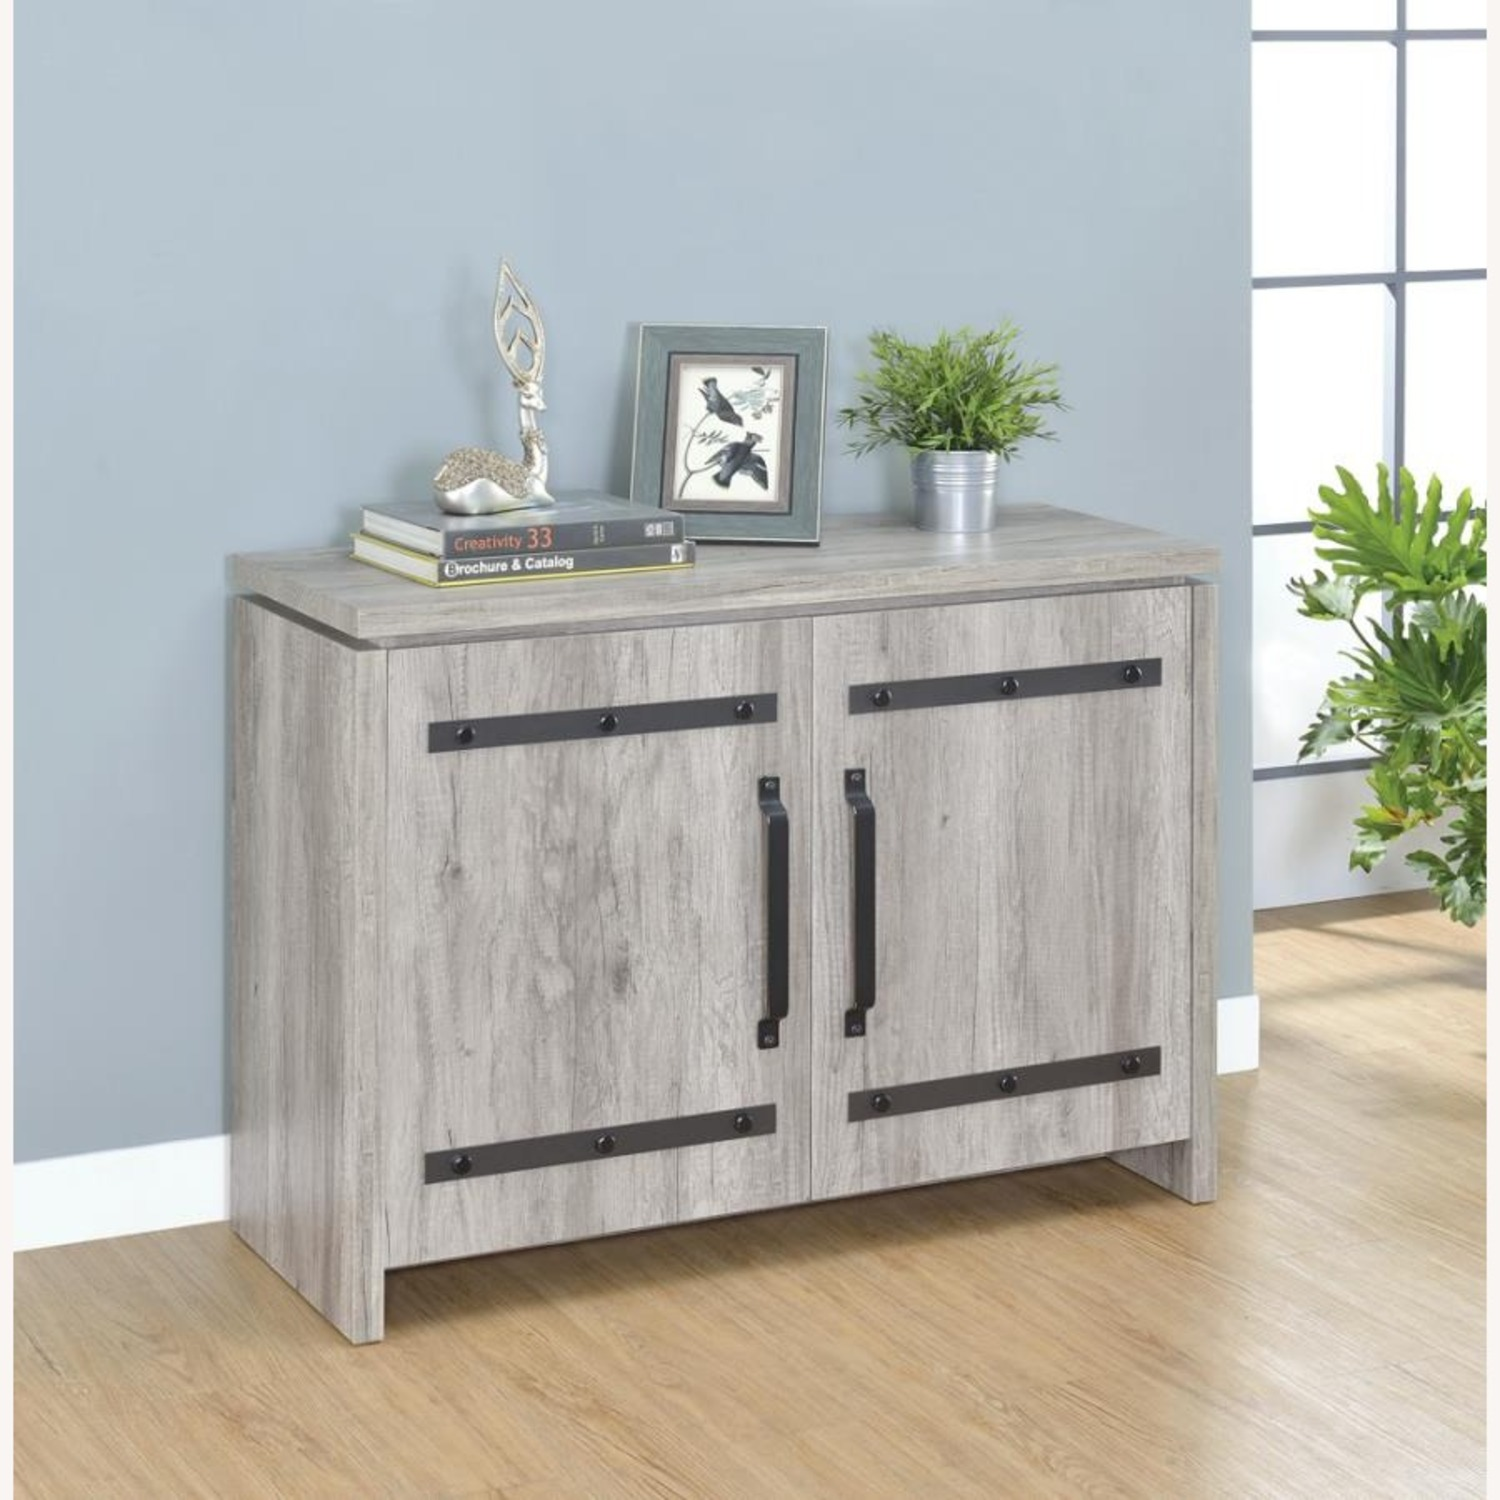 Accent Cabinet In Grey Driftwood W/ Rustic Metals - image-5